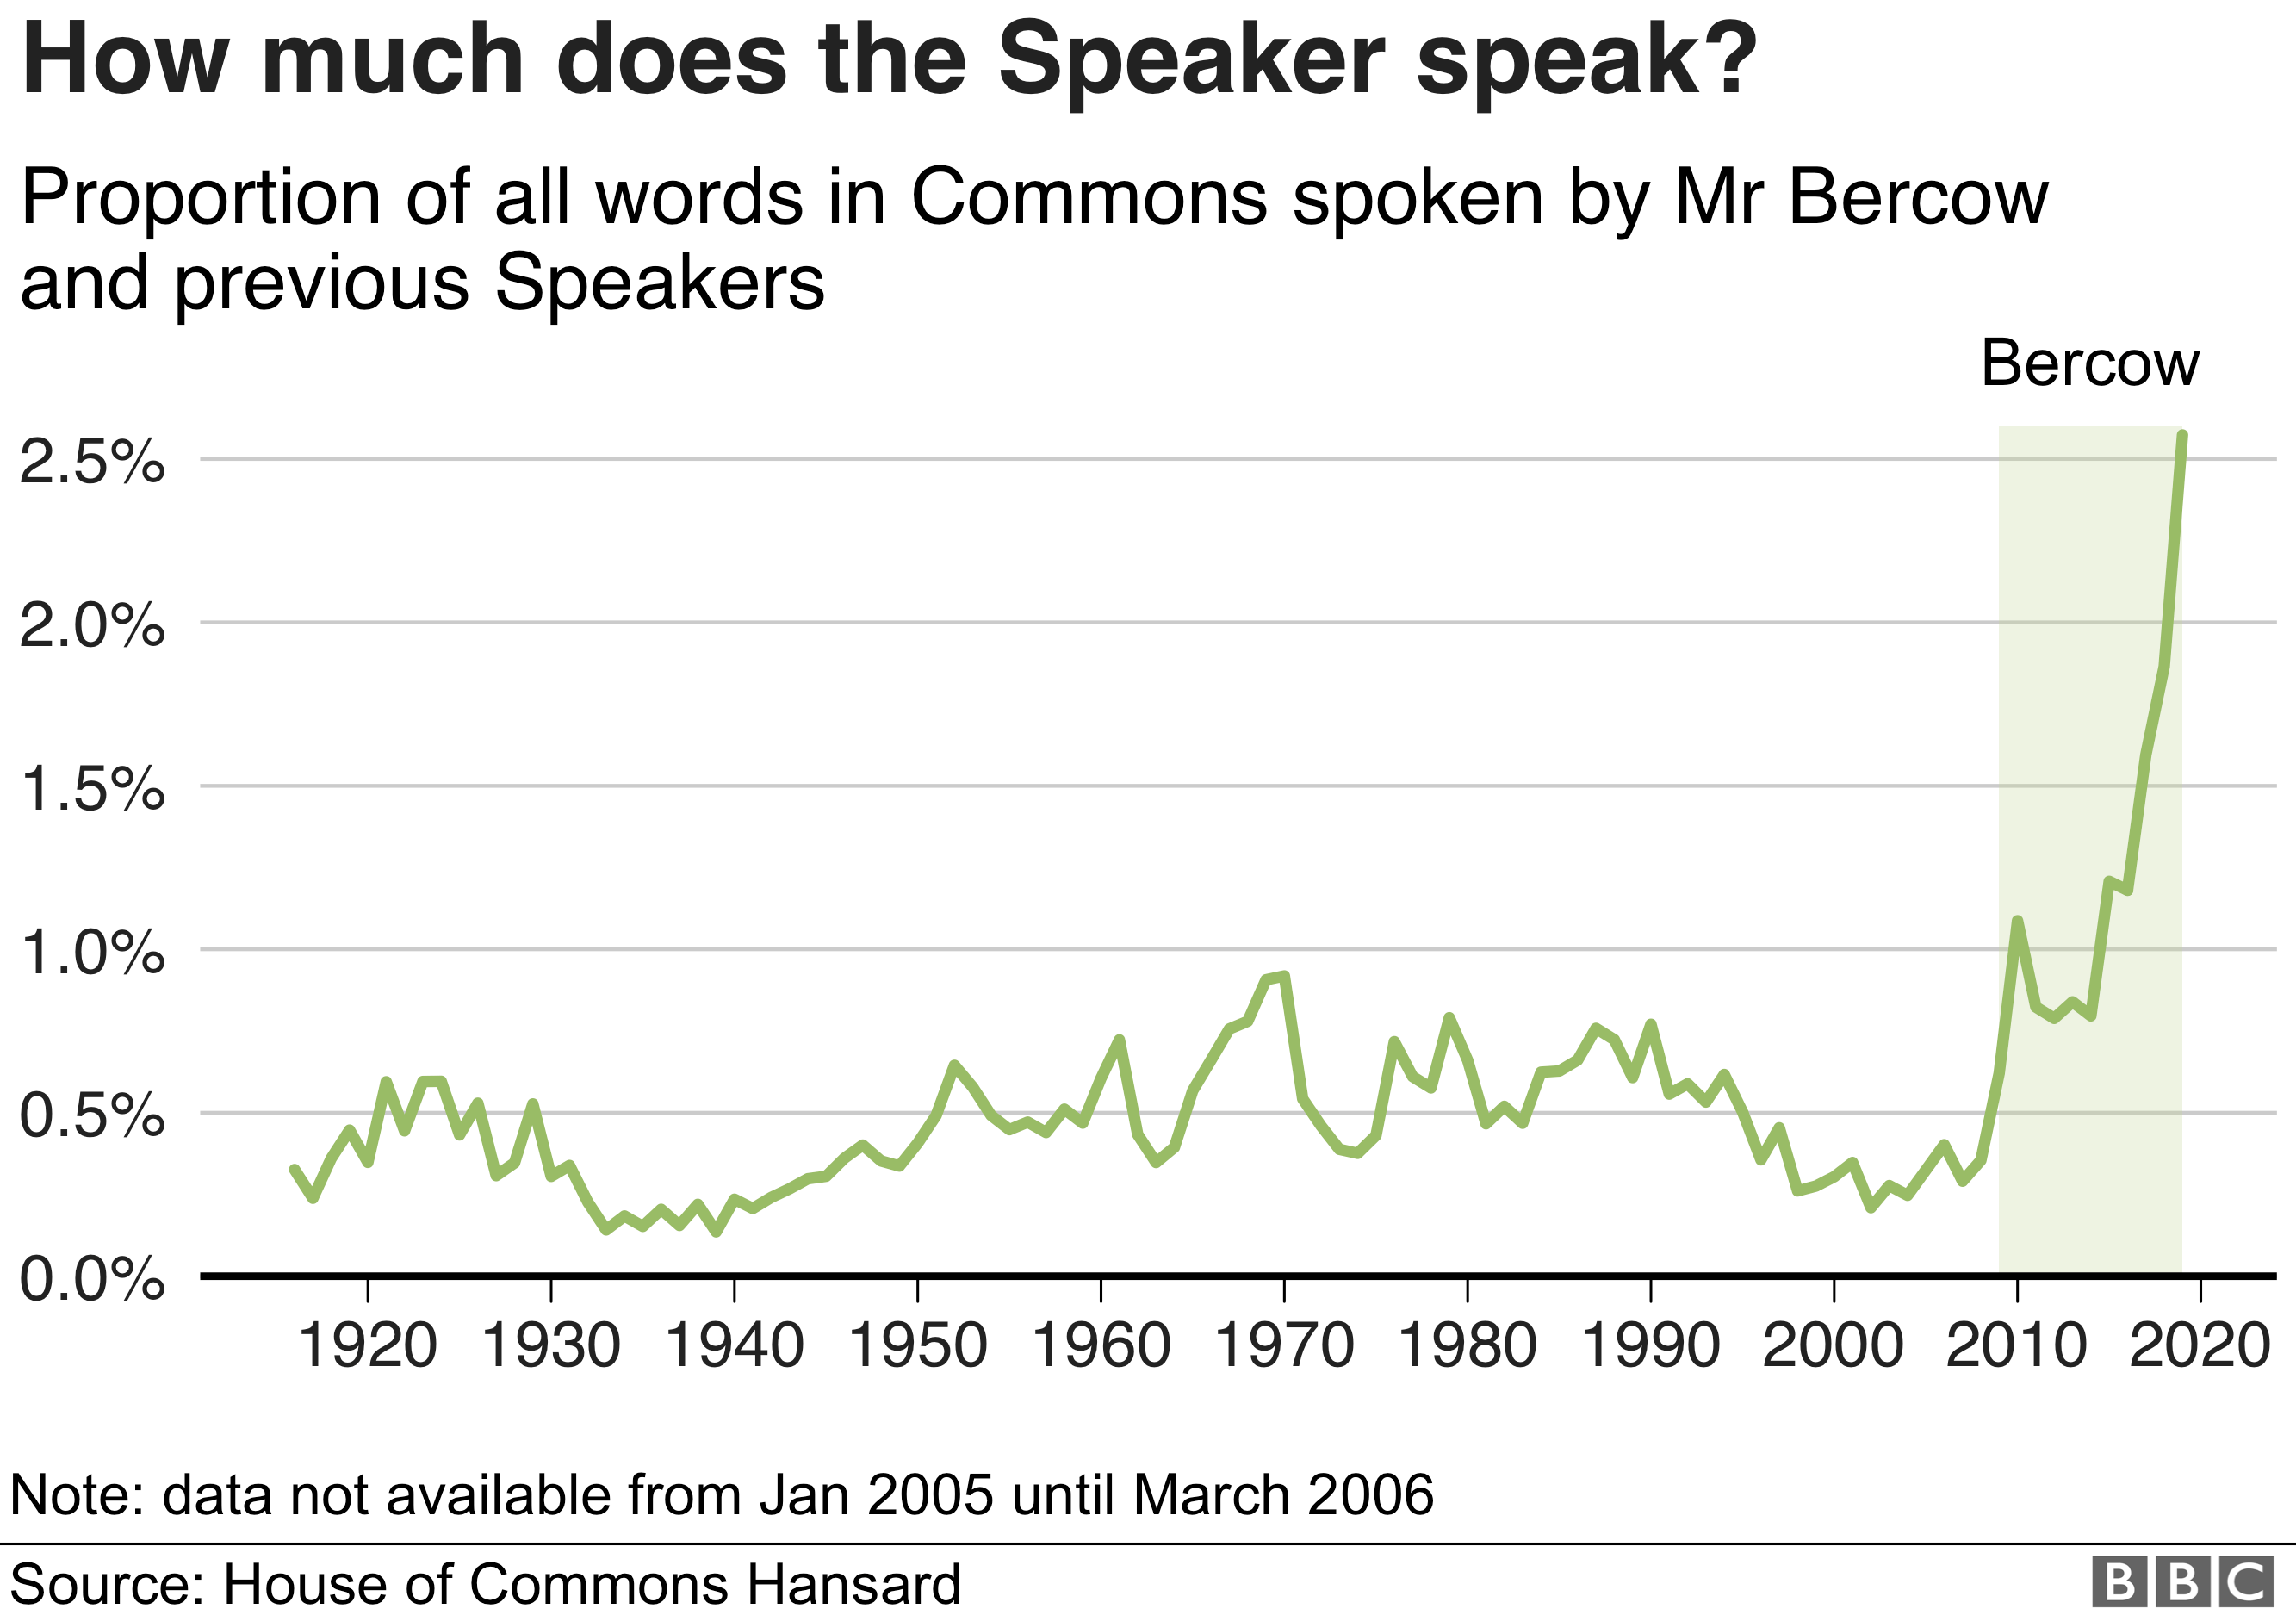 Chart showing proportion of words spoken by Commons Speaker